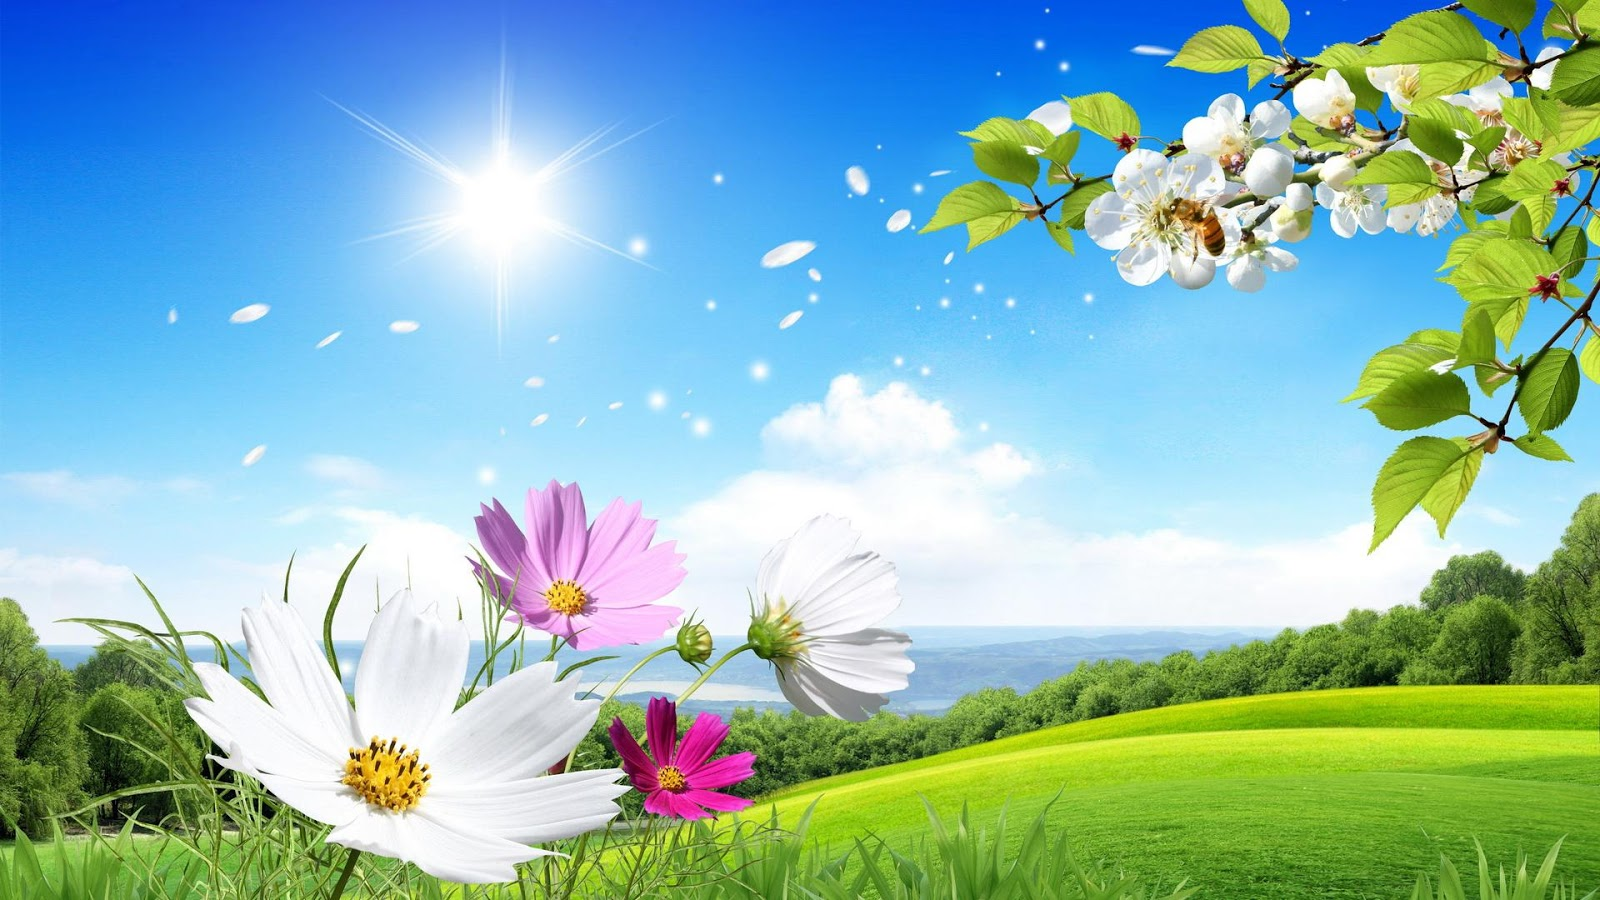 Flowers wallpapers natural sceneries   Flower Wallpaper 1600x900